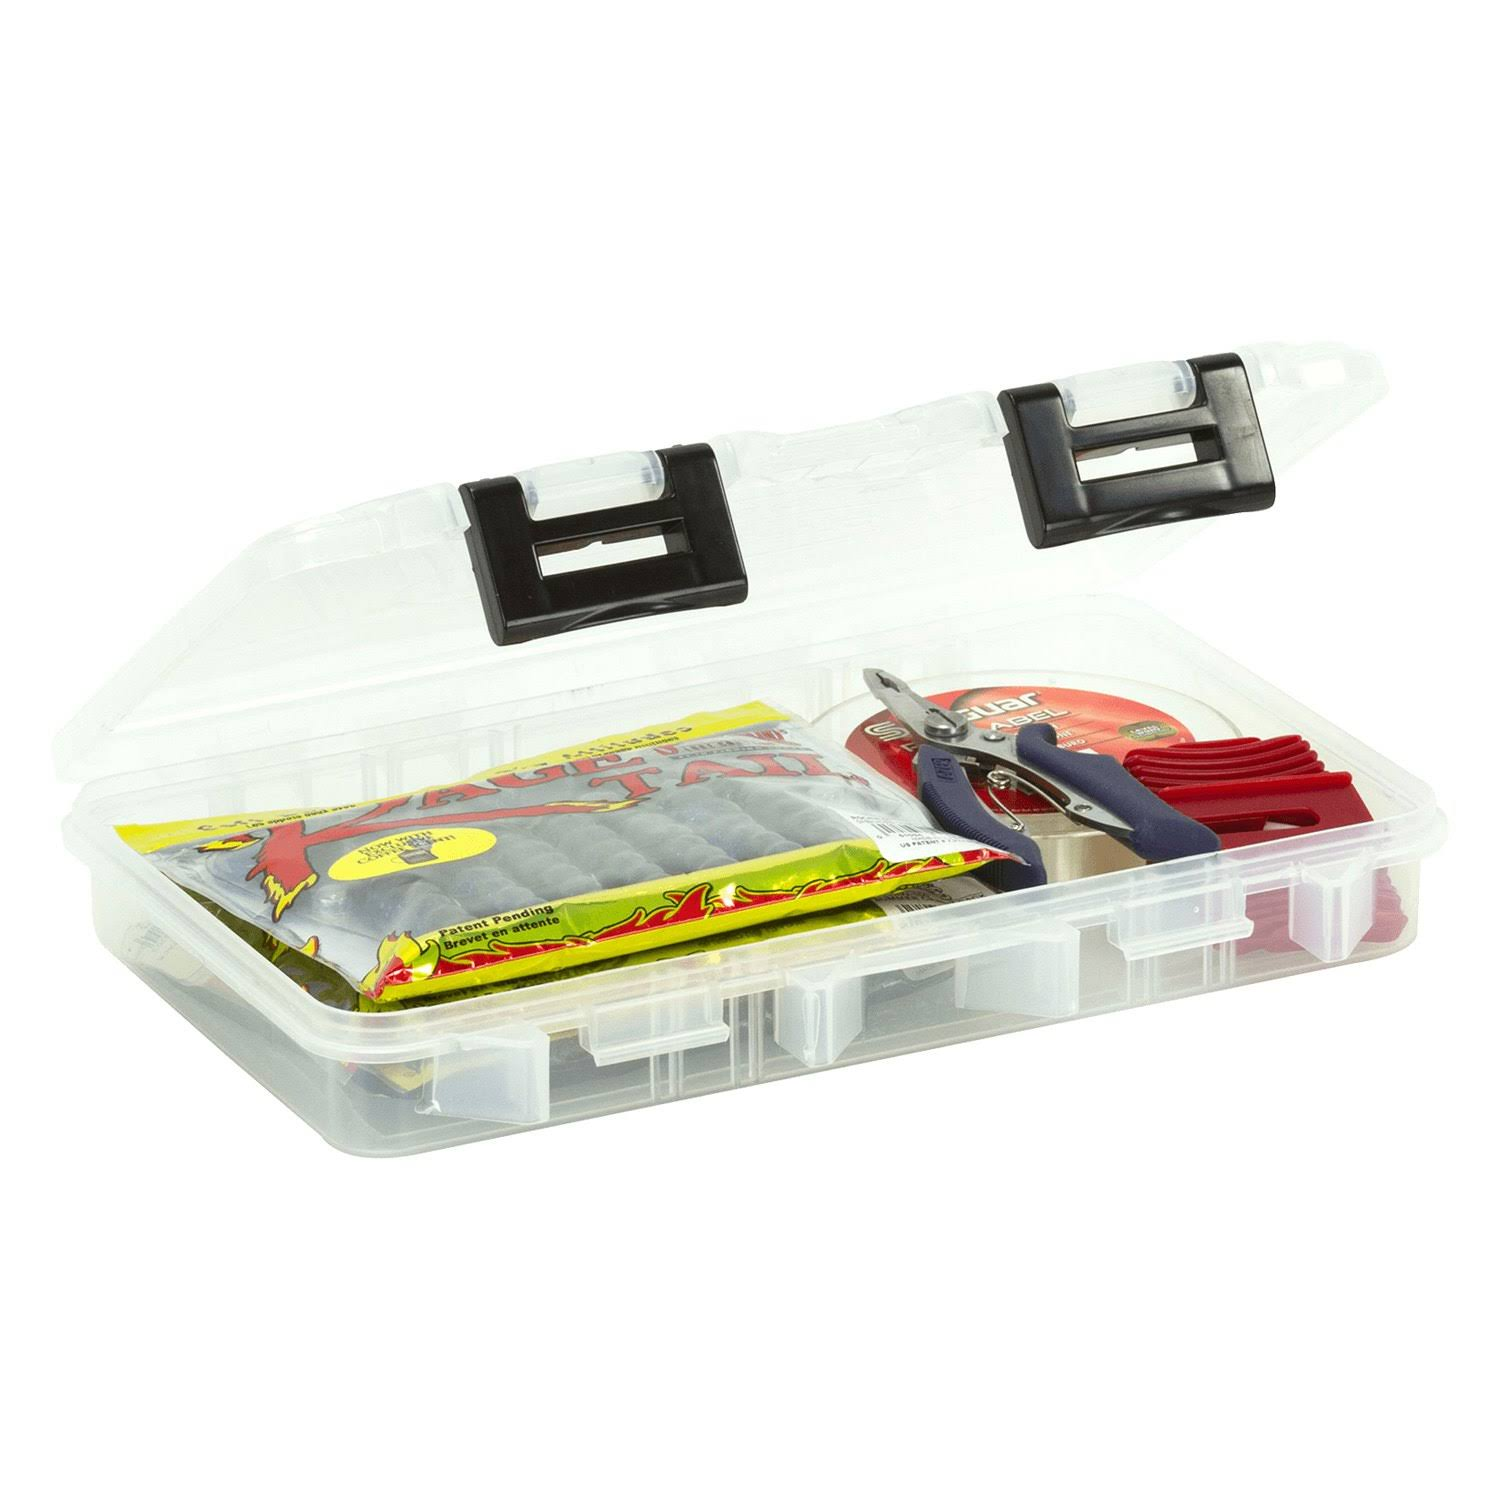 Plano 360710 Prolatch Stowaway Open Compartments - Clear